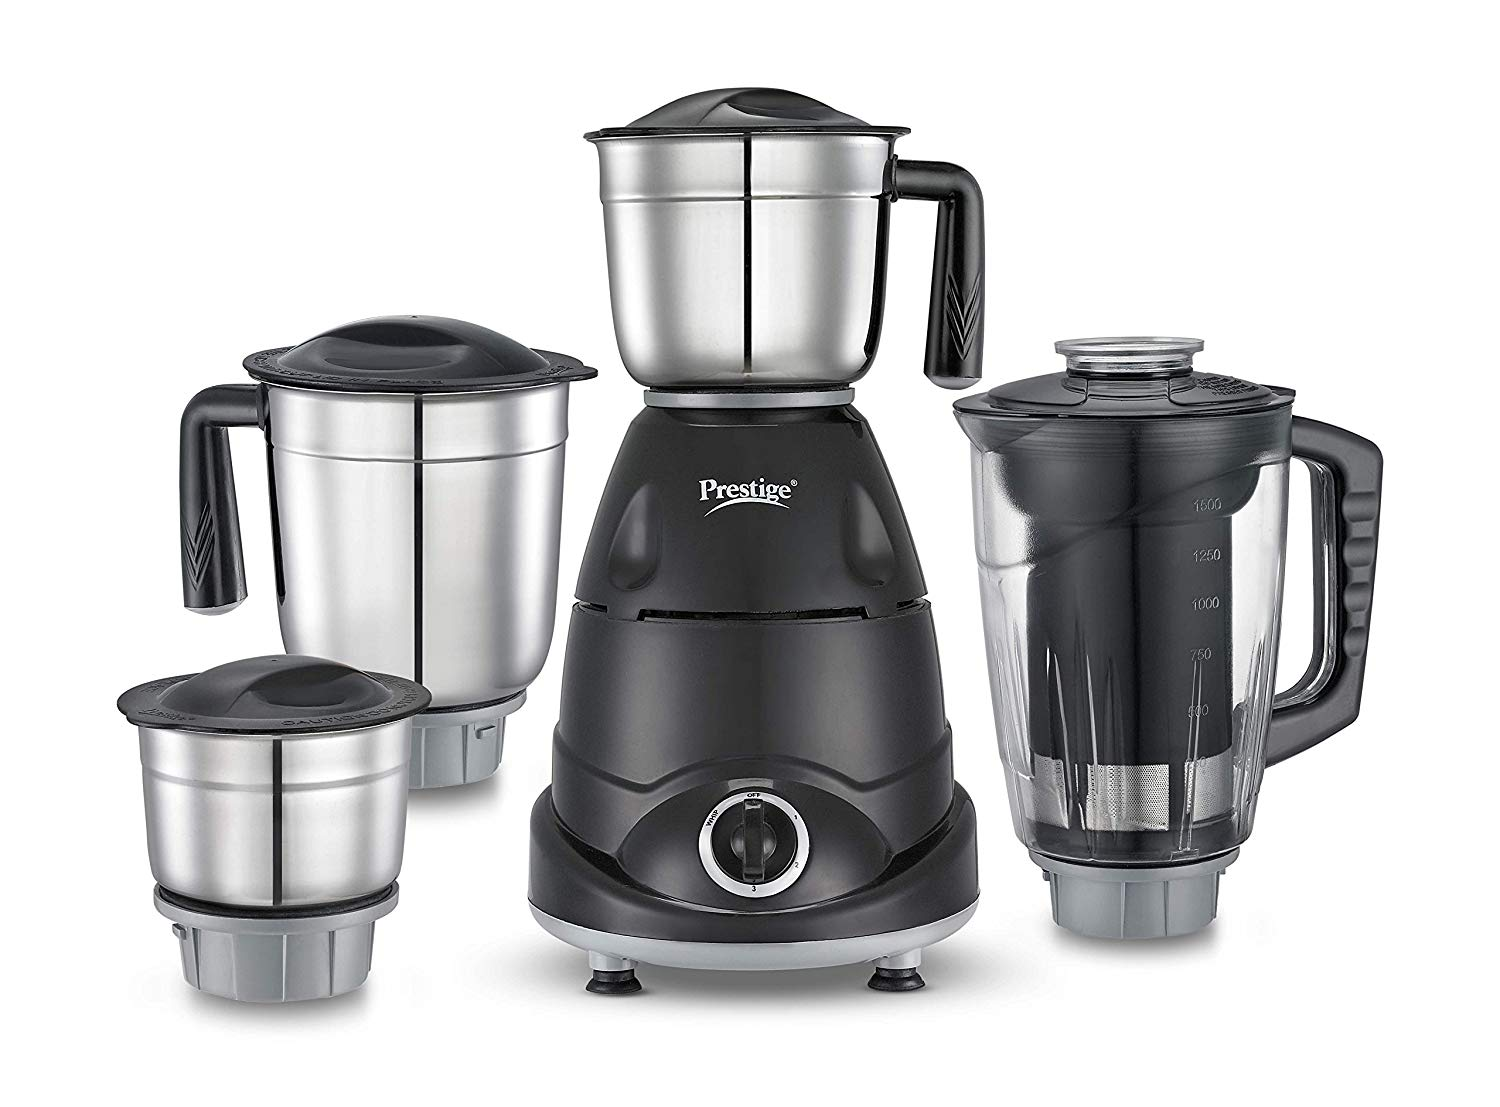 Prestige Storm Stainless Steel 750 Watts Mixer Grinder with 4 Jars